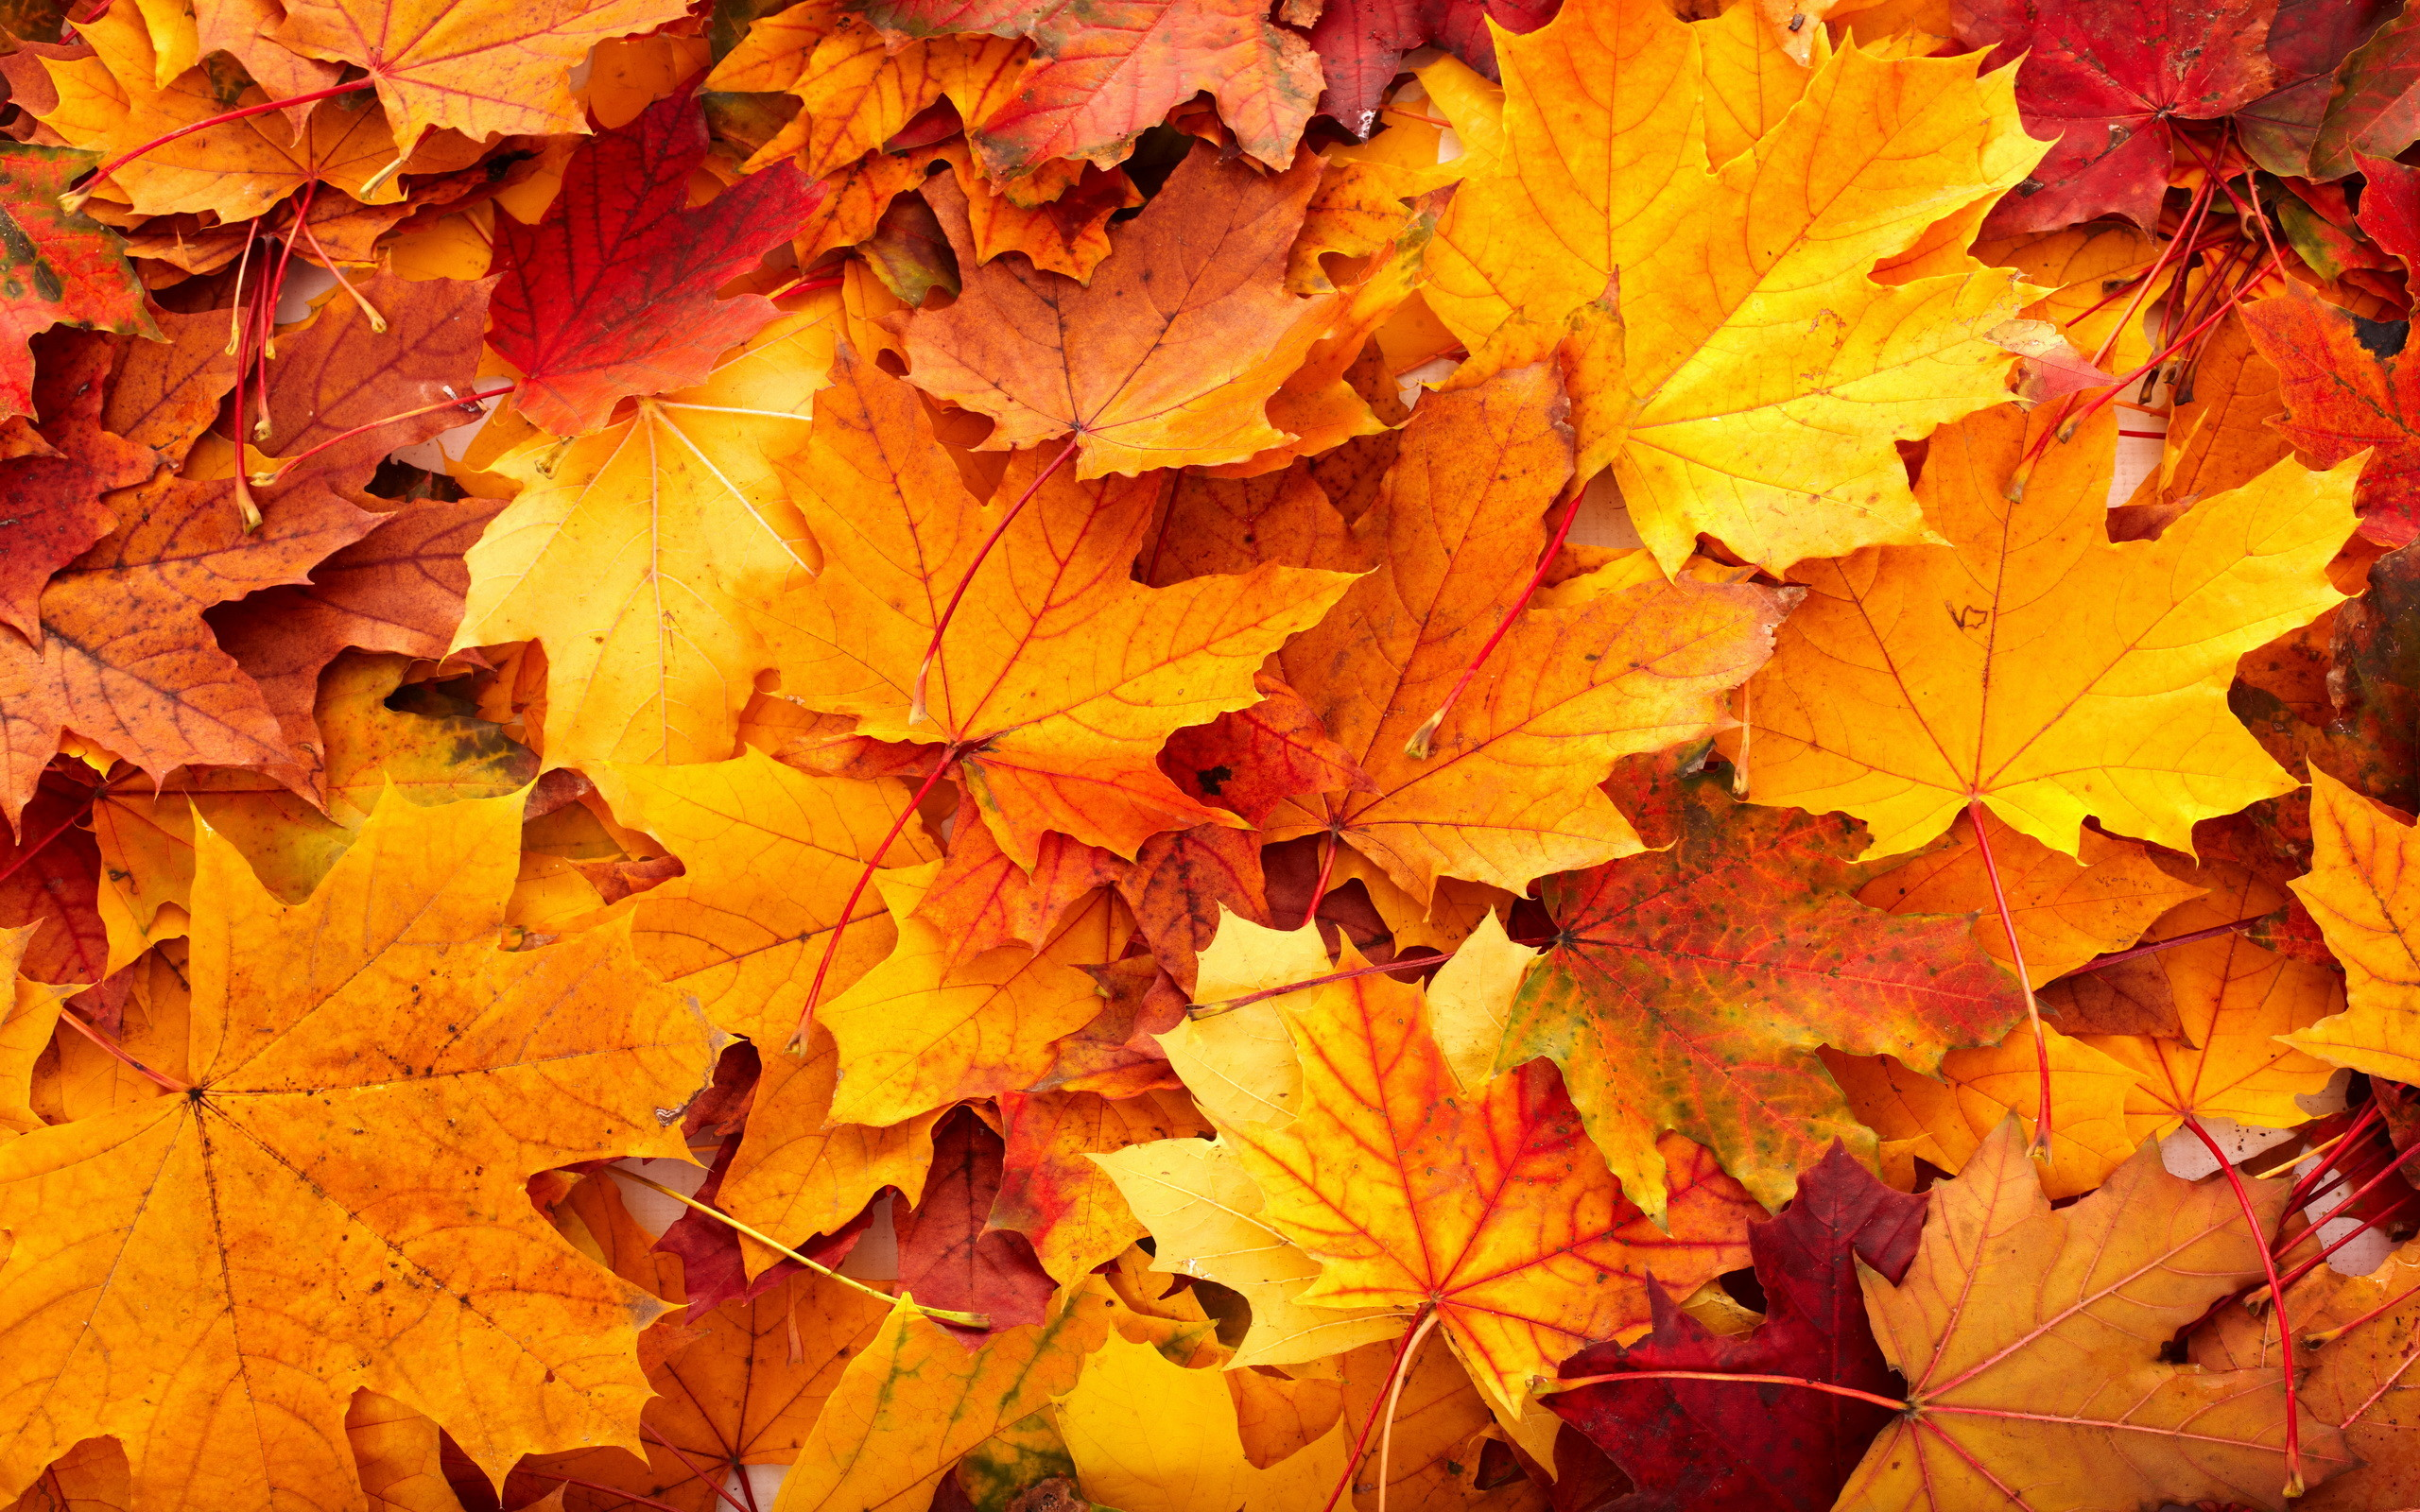 2560x1600 leaves a'a· pumpkins a'a· autum trees nature landscape leaf leaves 2560x2048 local offer android wallpaper